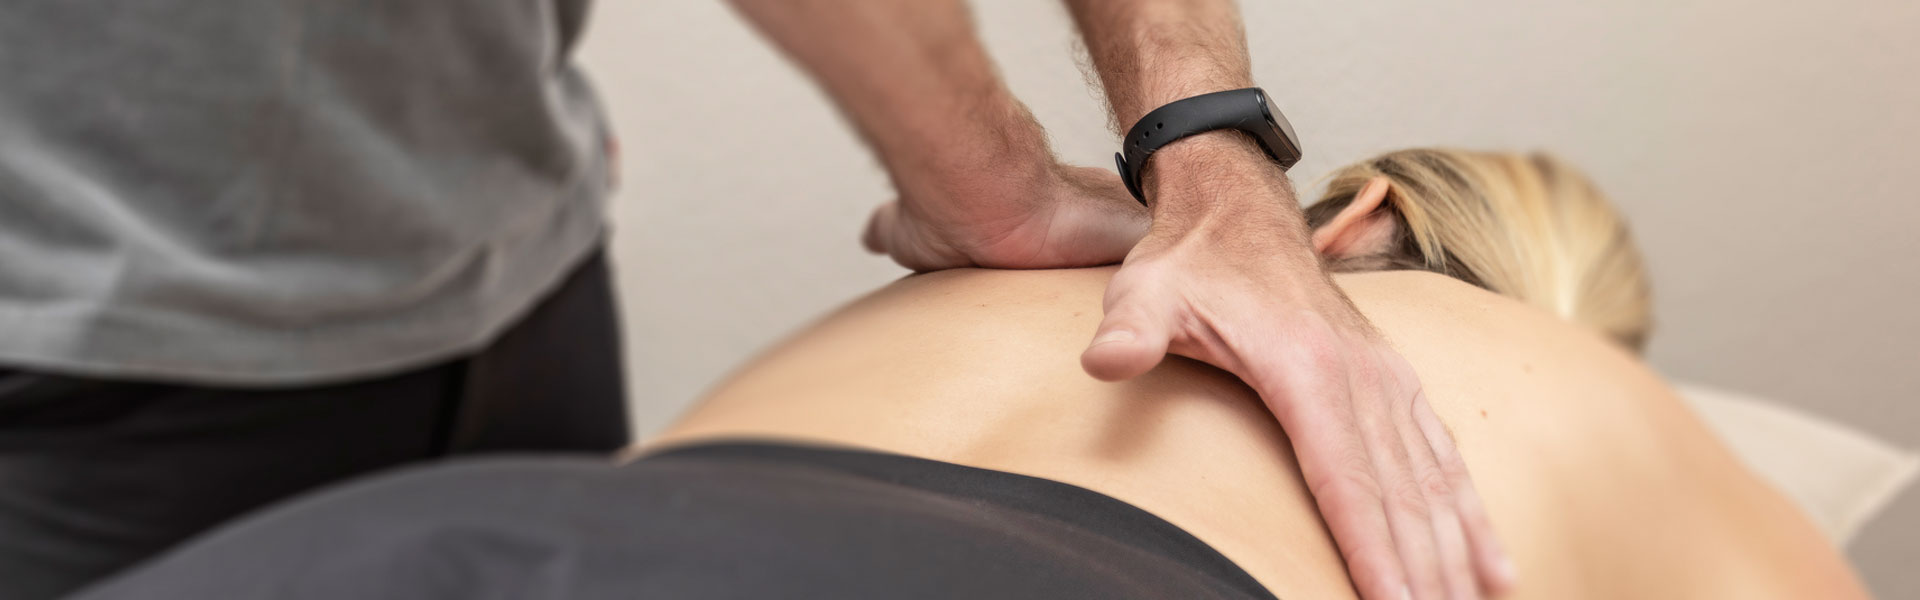 Praxis für Physiotherapie Bucelski - Massage